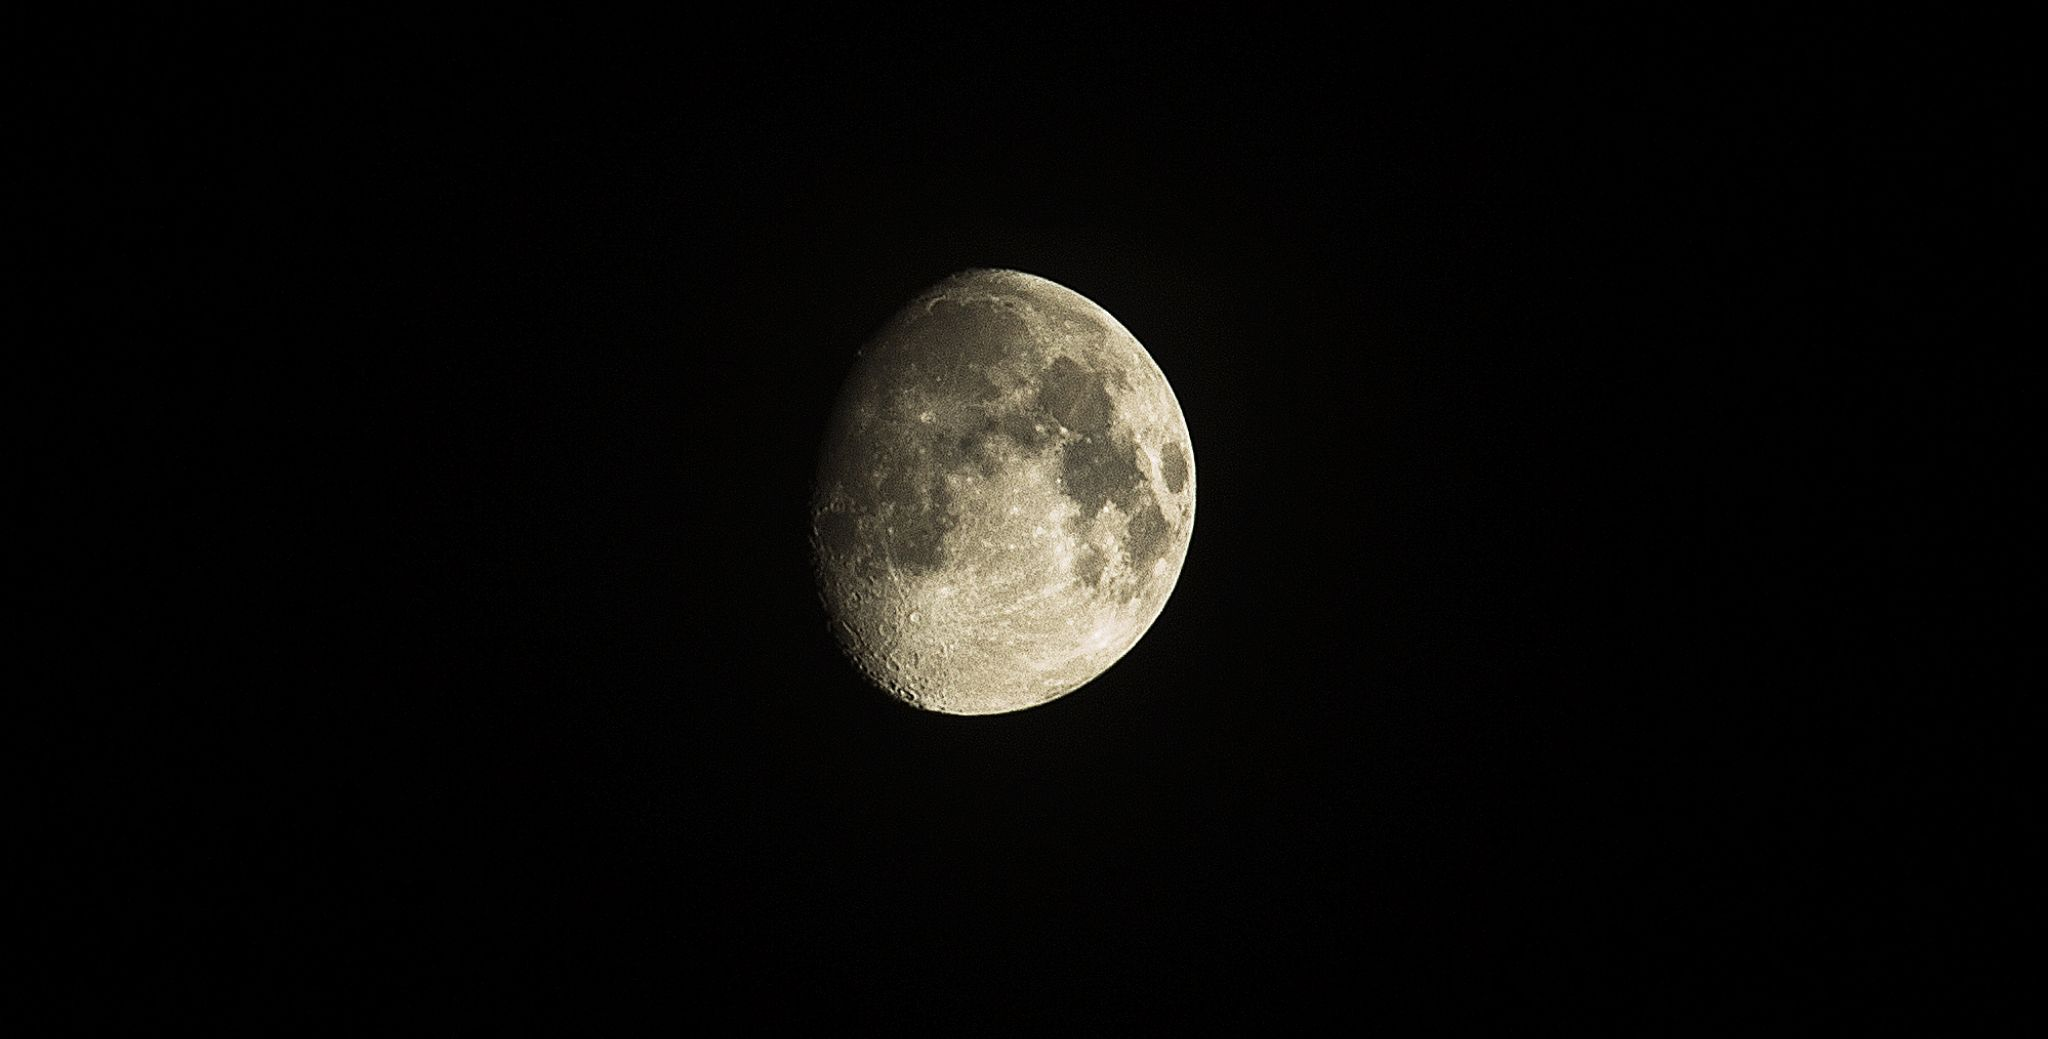 the dark side of the moon by tim.schlaab